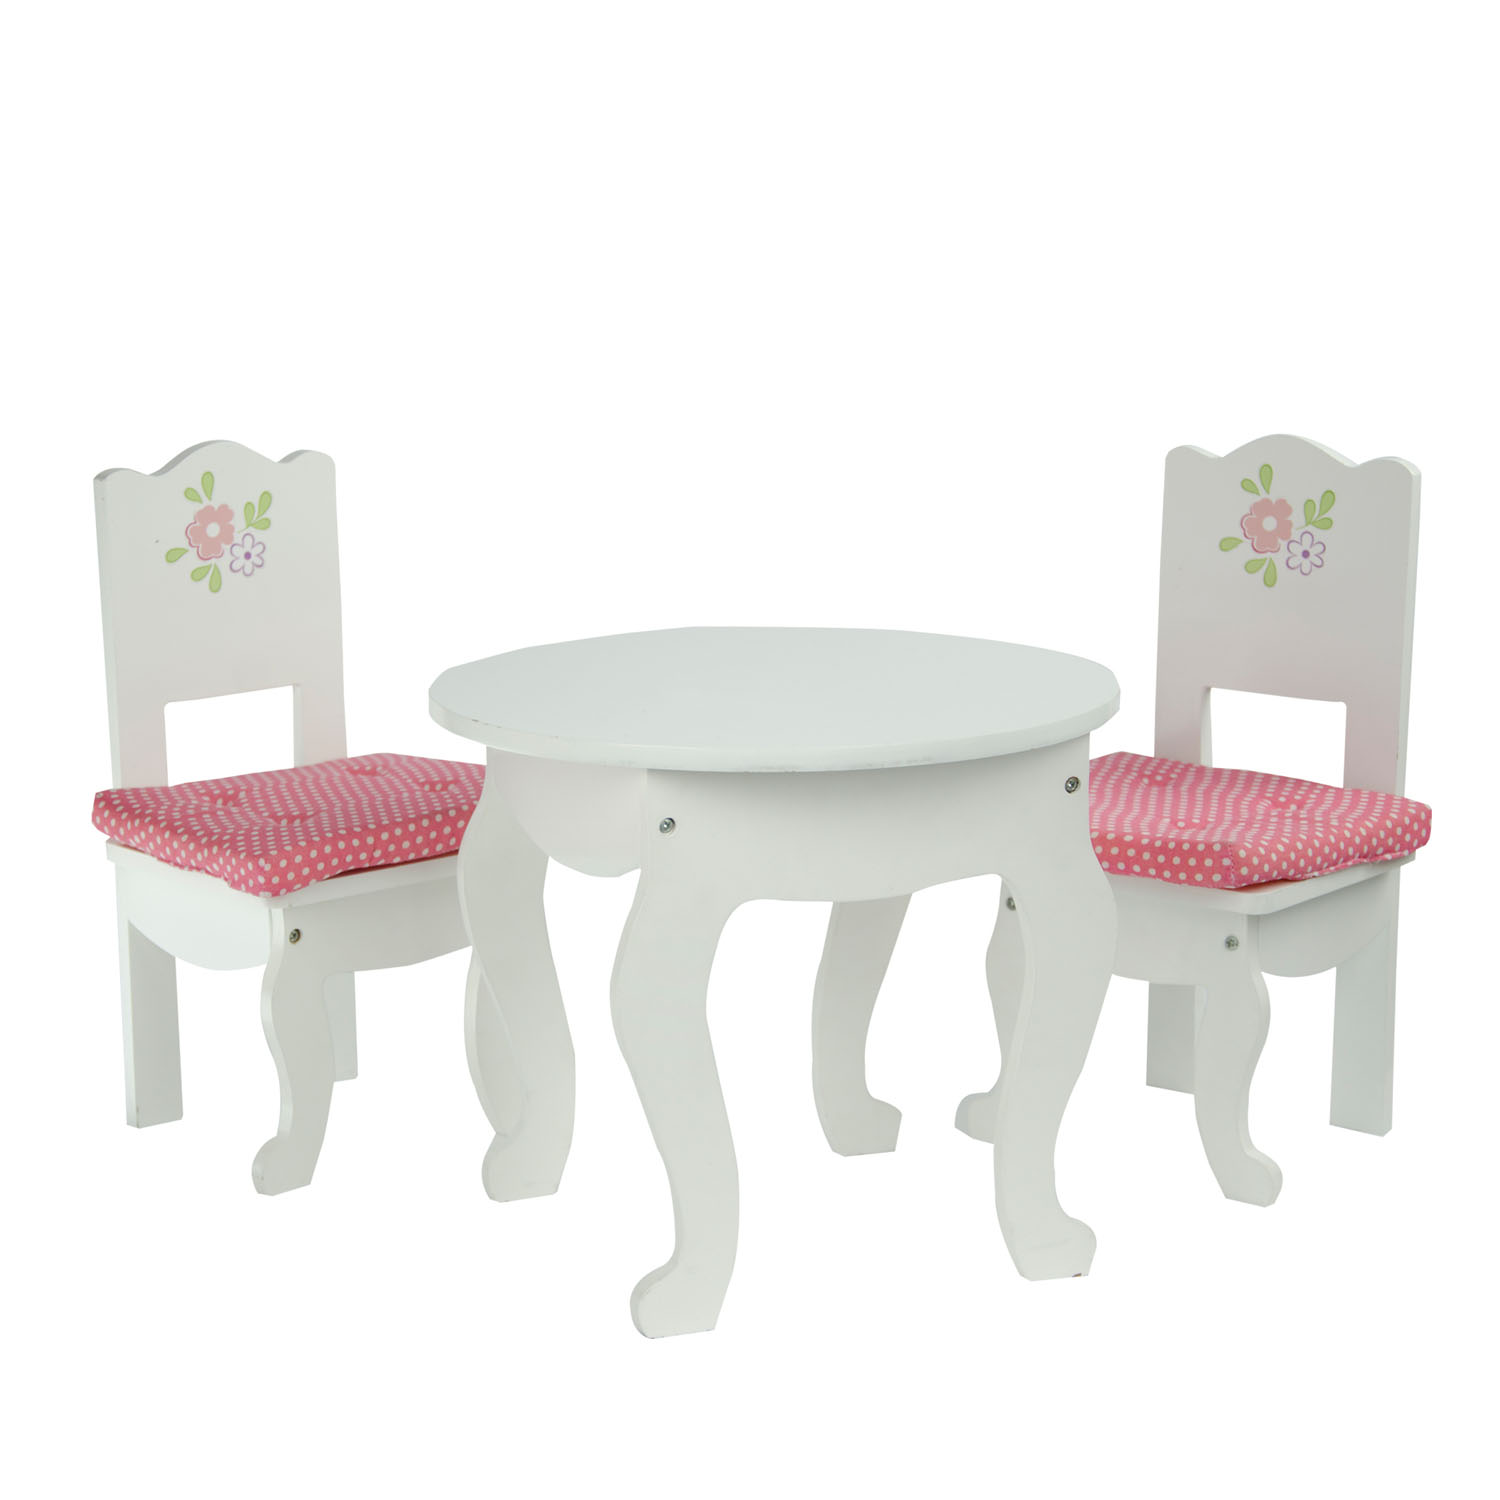 "Olivia's Little World Little Princess 18"" Doll Furniture - Table and 2 Chairs Set"